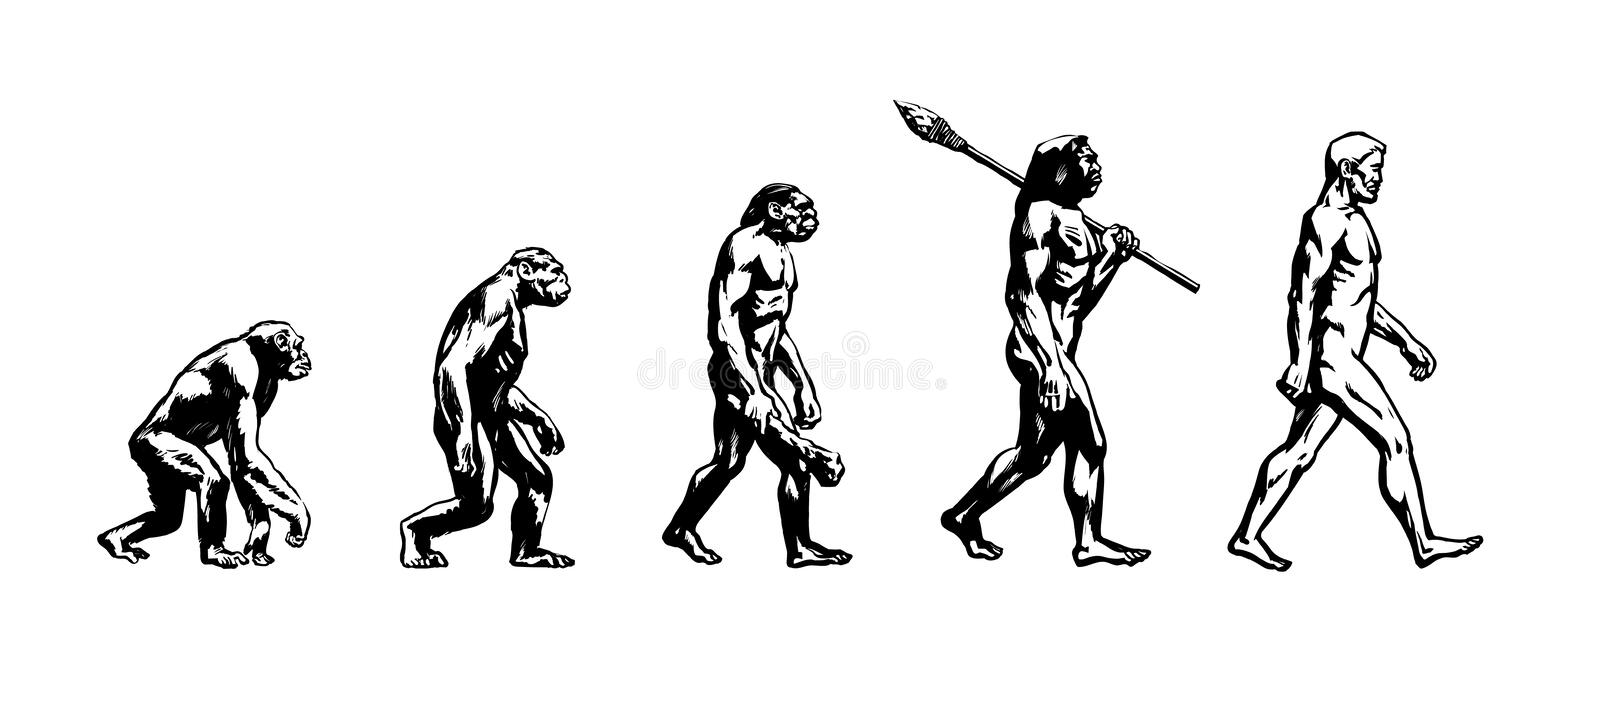 Evolution av mannen vektor illustrationer